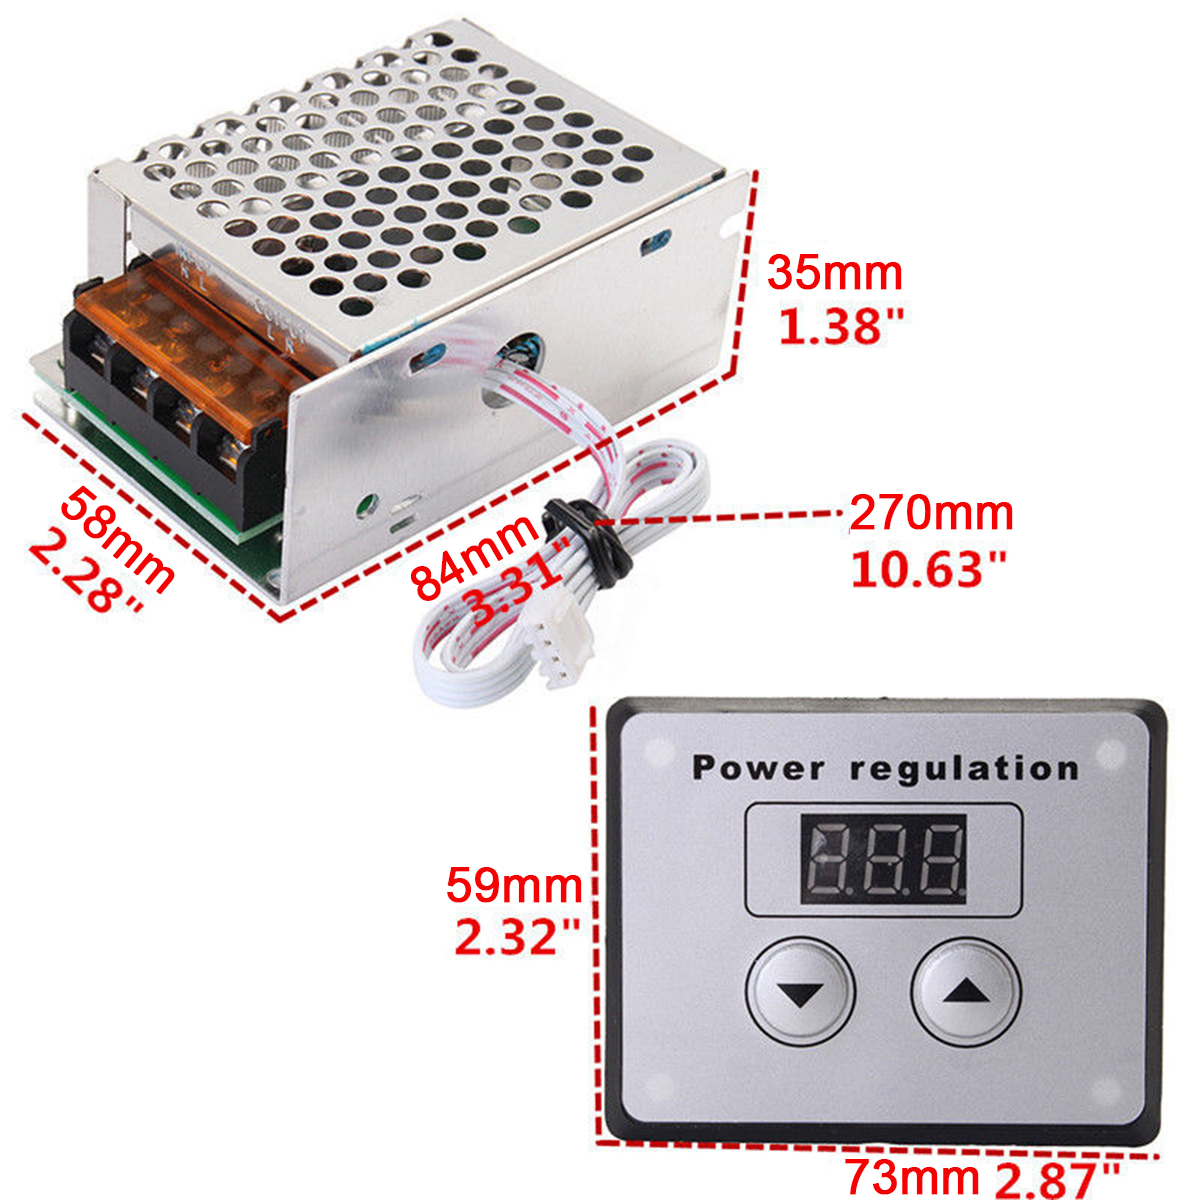 AC Regulator 4000W 220V Mayitr SCR Voltage Regulator Dimmer Electric Motor Speed Temperature Controller for Water Heater Lamps